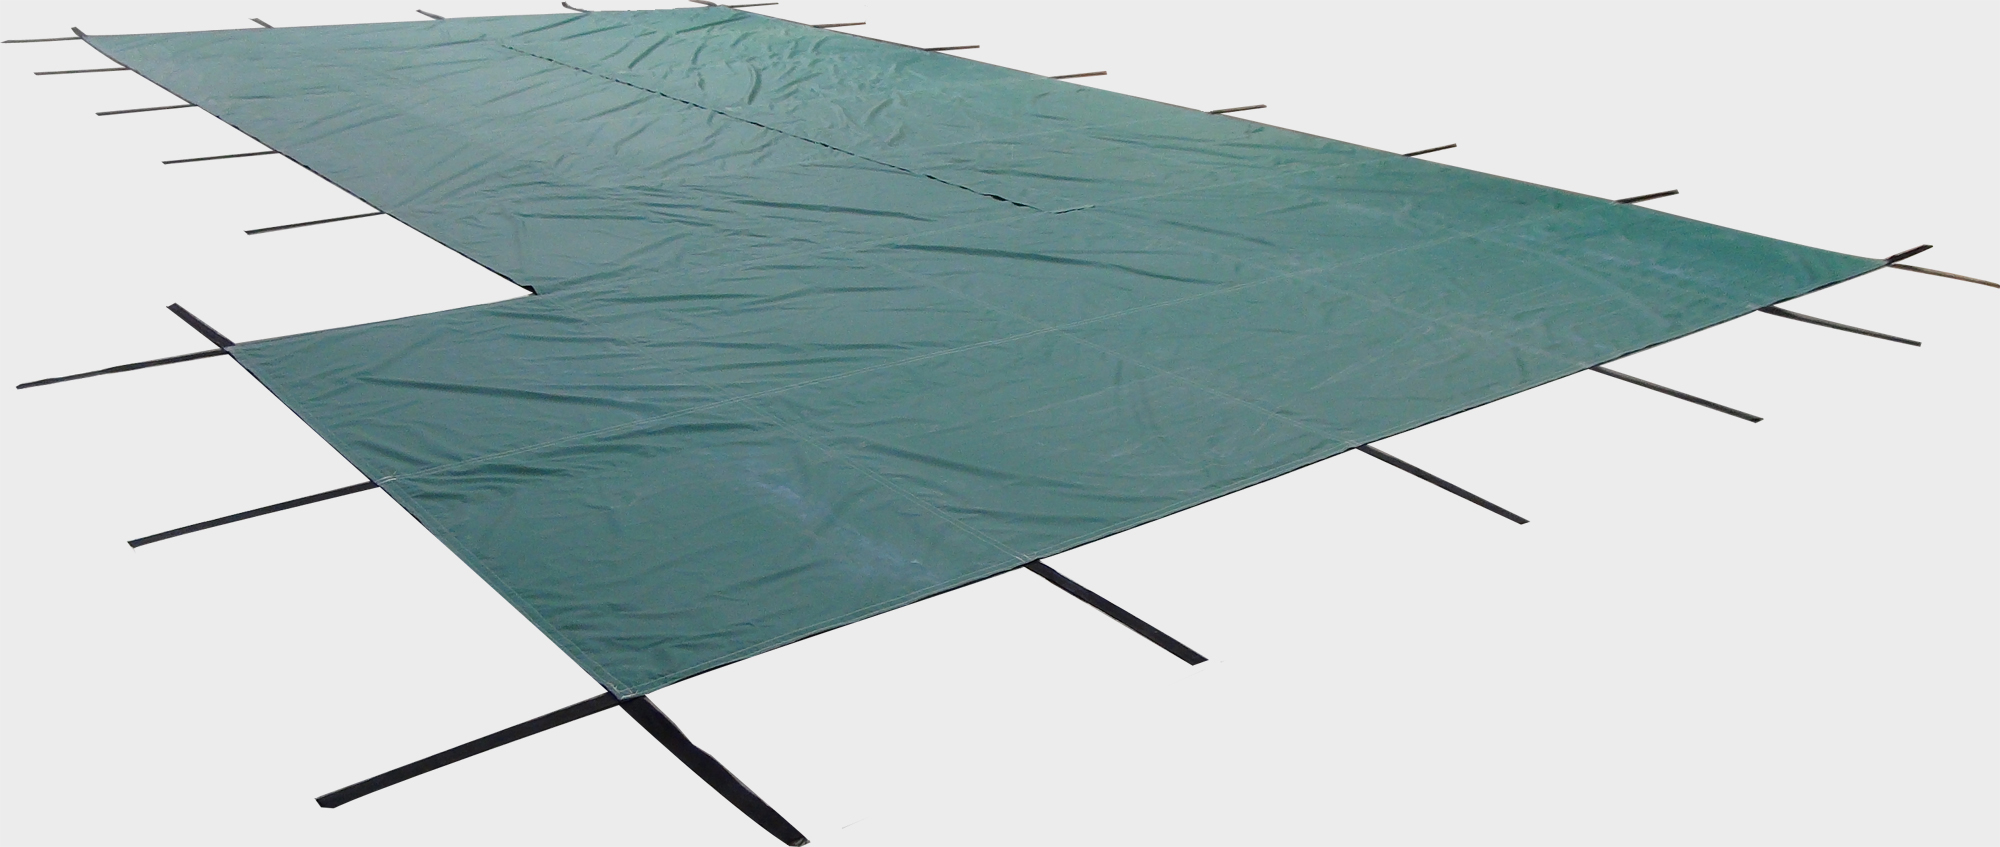 Ratchet Lock Safety Pool Cover For 18 X 36 In Ground